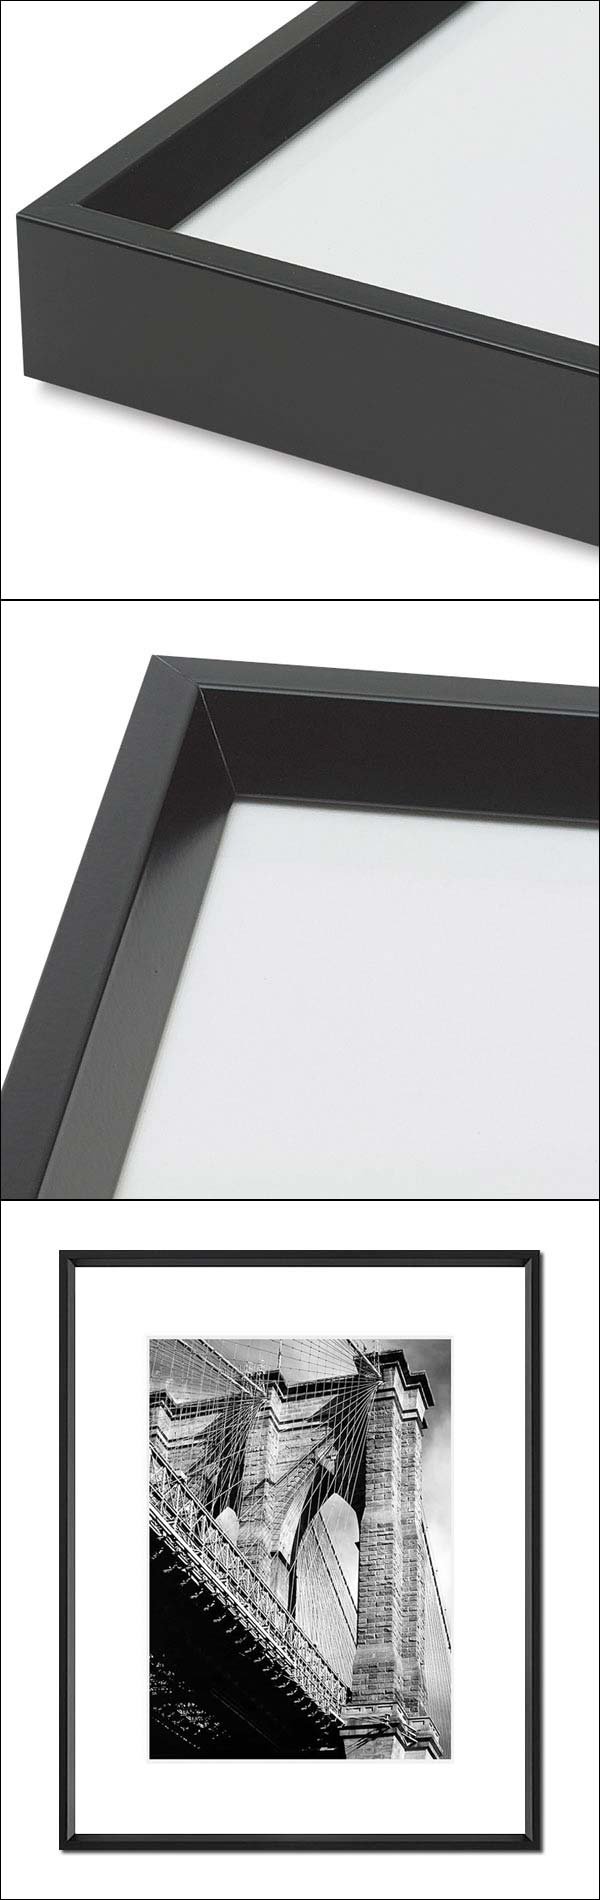 12 x 18 Frame - 12x18 Silver Picture Frame For Sale